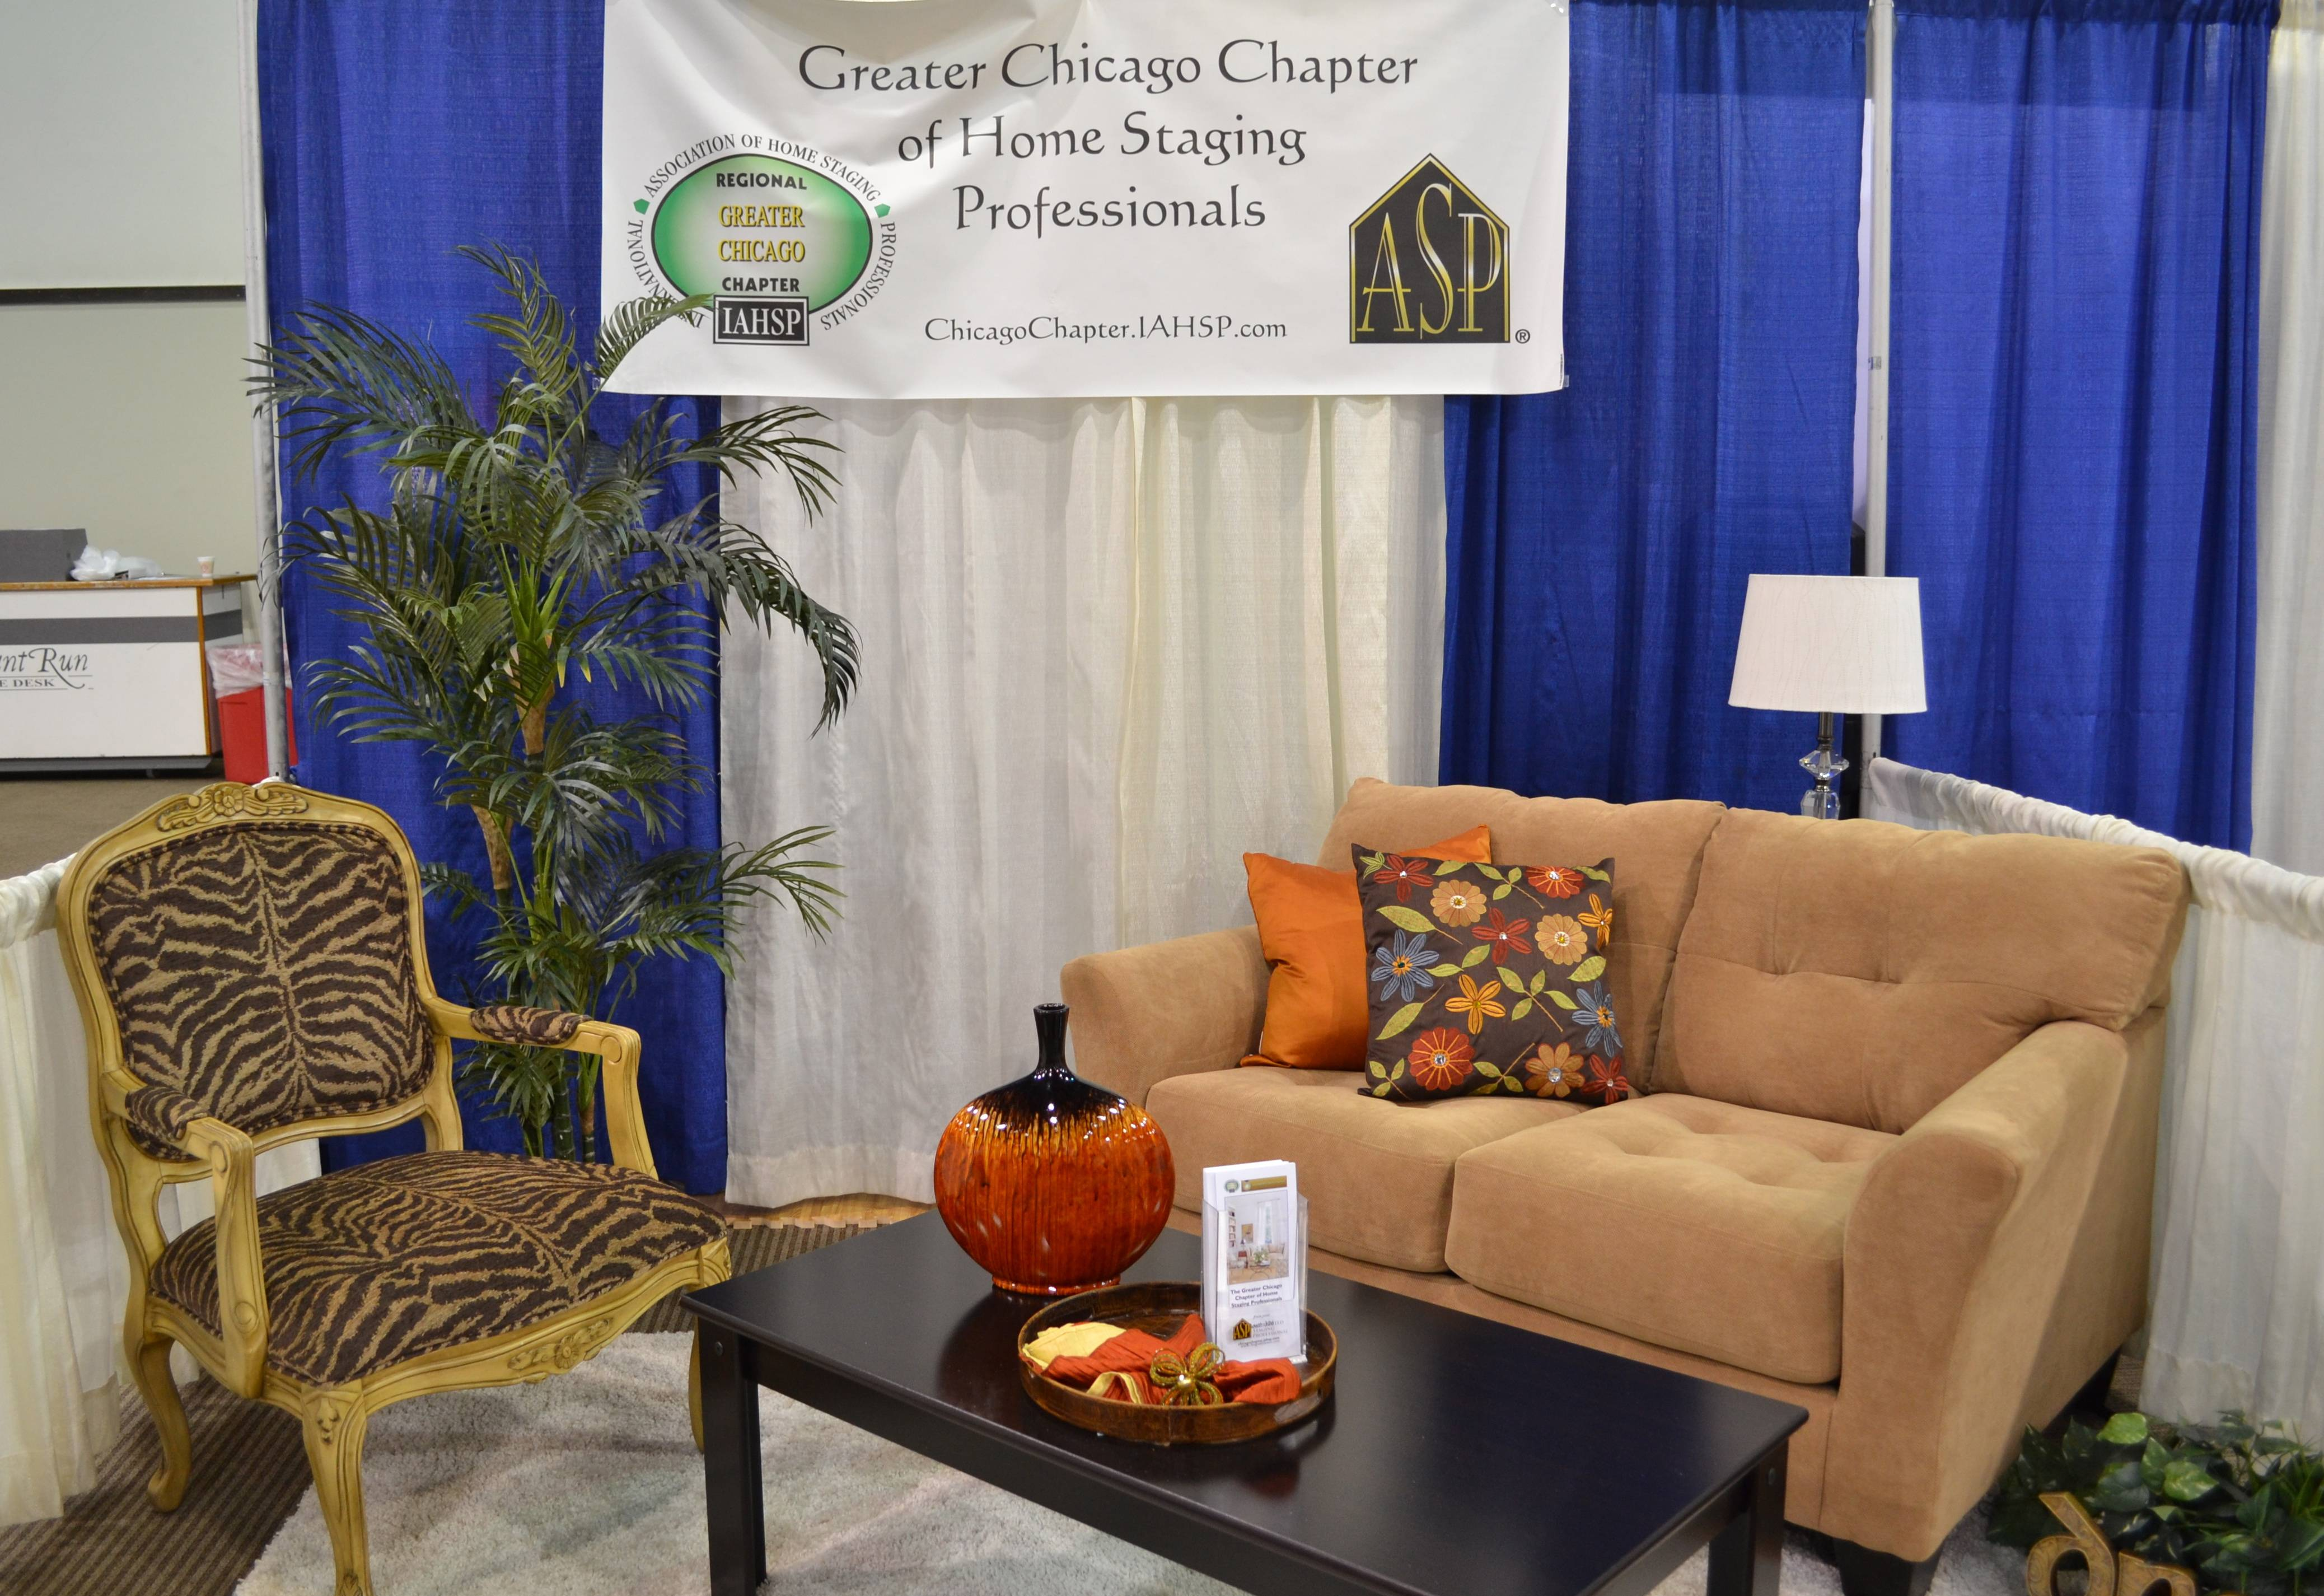 "Greater Chicago Chapter of Home Staging Professionals ""living room"" booth at the Illinois Association of Realtors Fall Conference & Expo, St. Charles, IL, October, 2012."